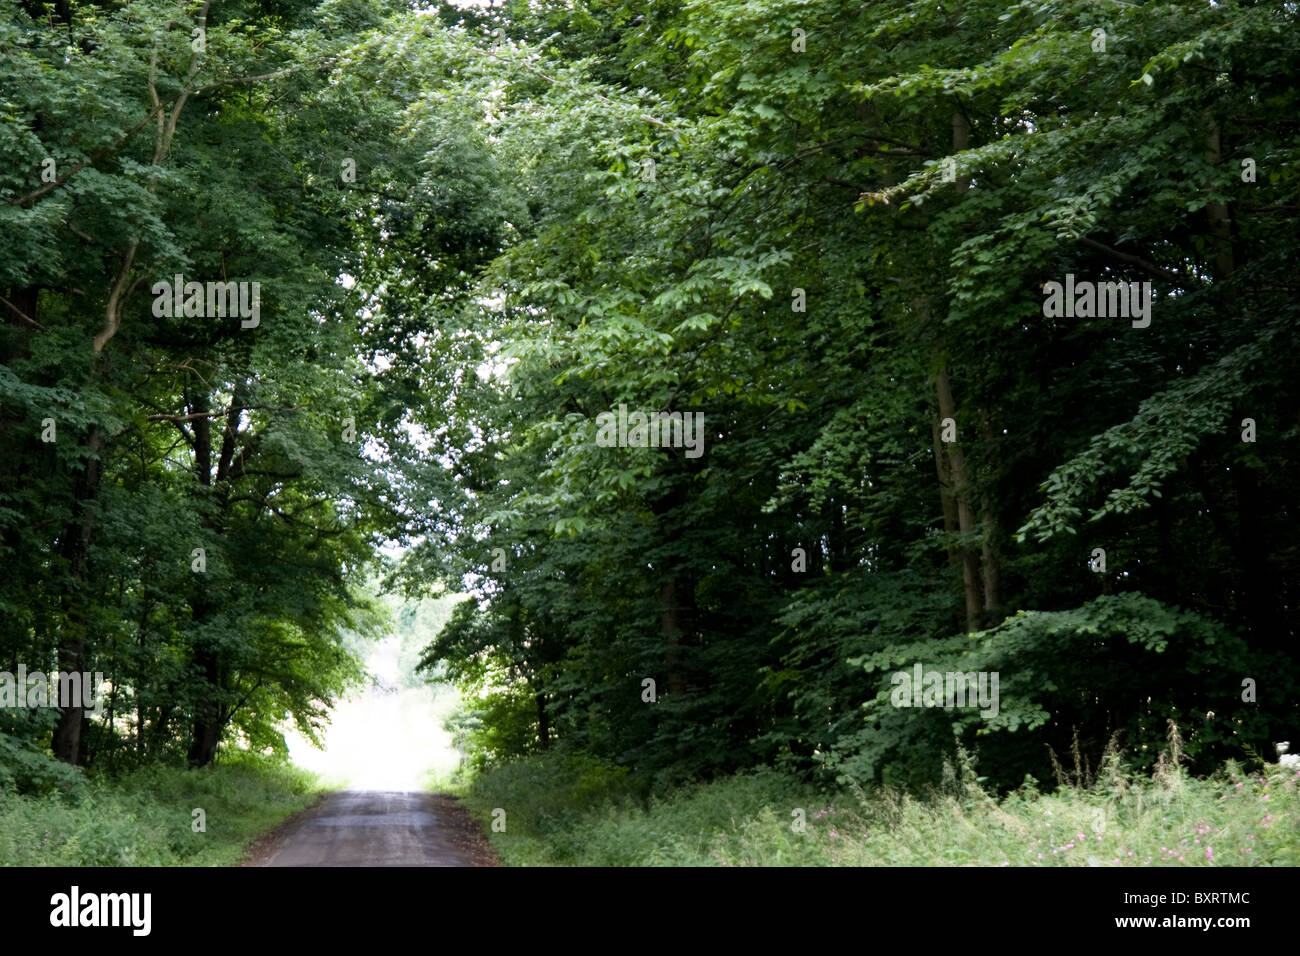 France, Normandie, Foret d'Eu, View of road through forest - Stock Image